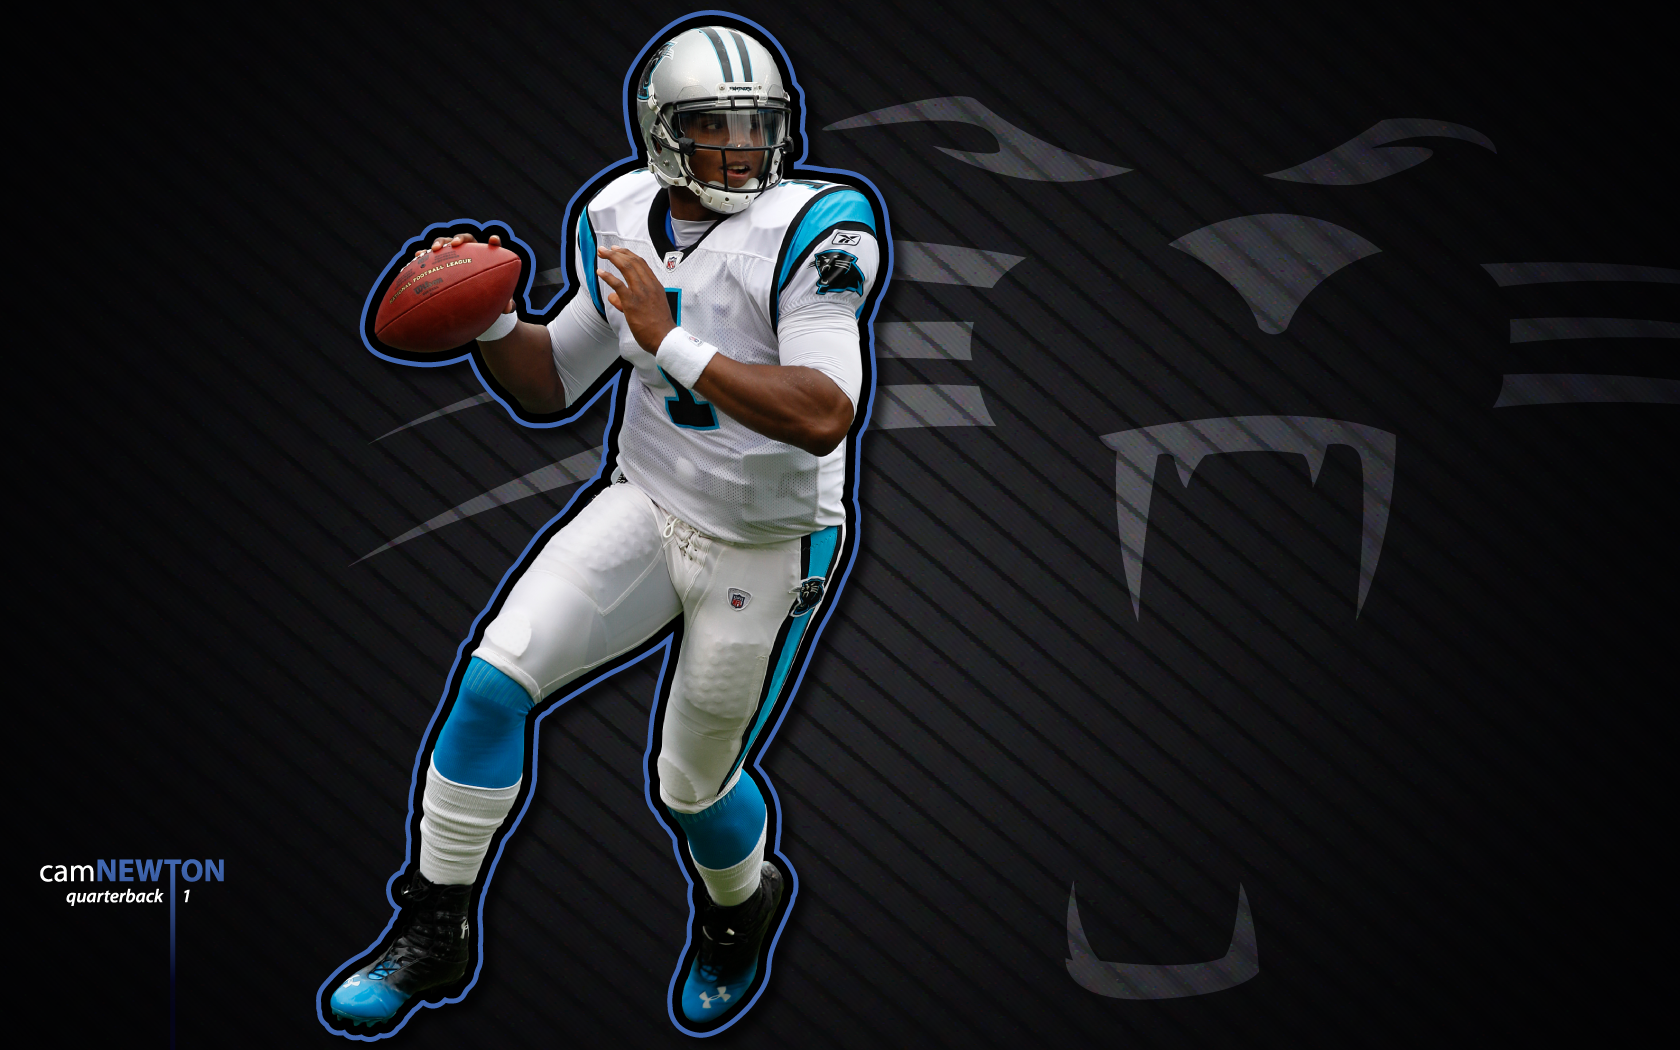 cam newton wallpaper 1 by jb online d4ameiupng 1680x1050